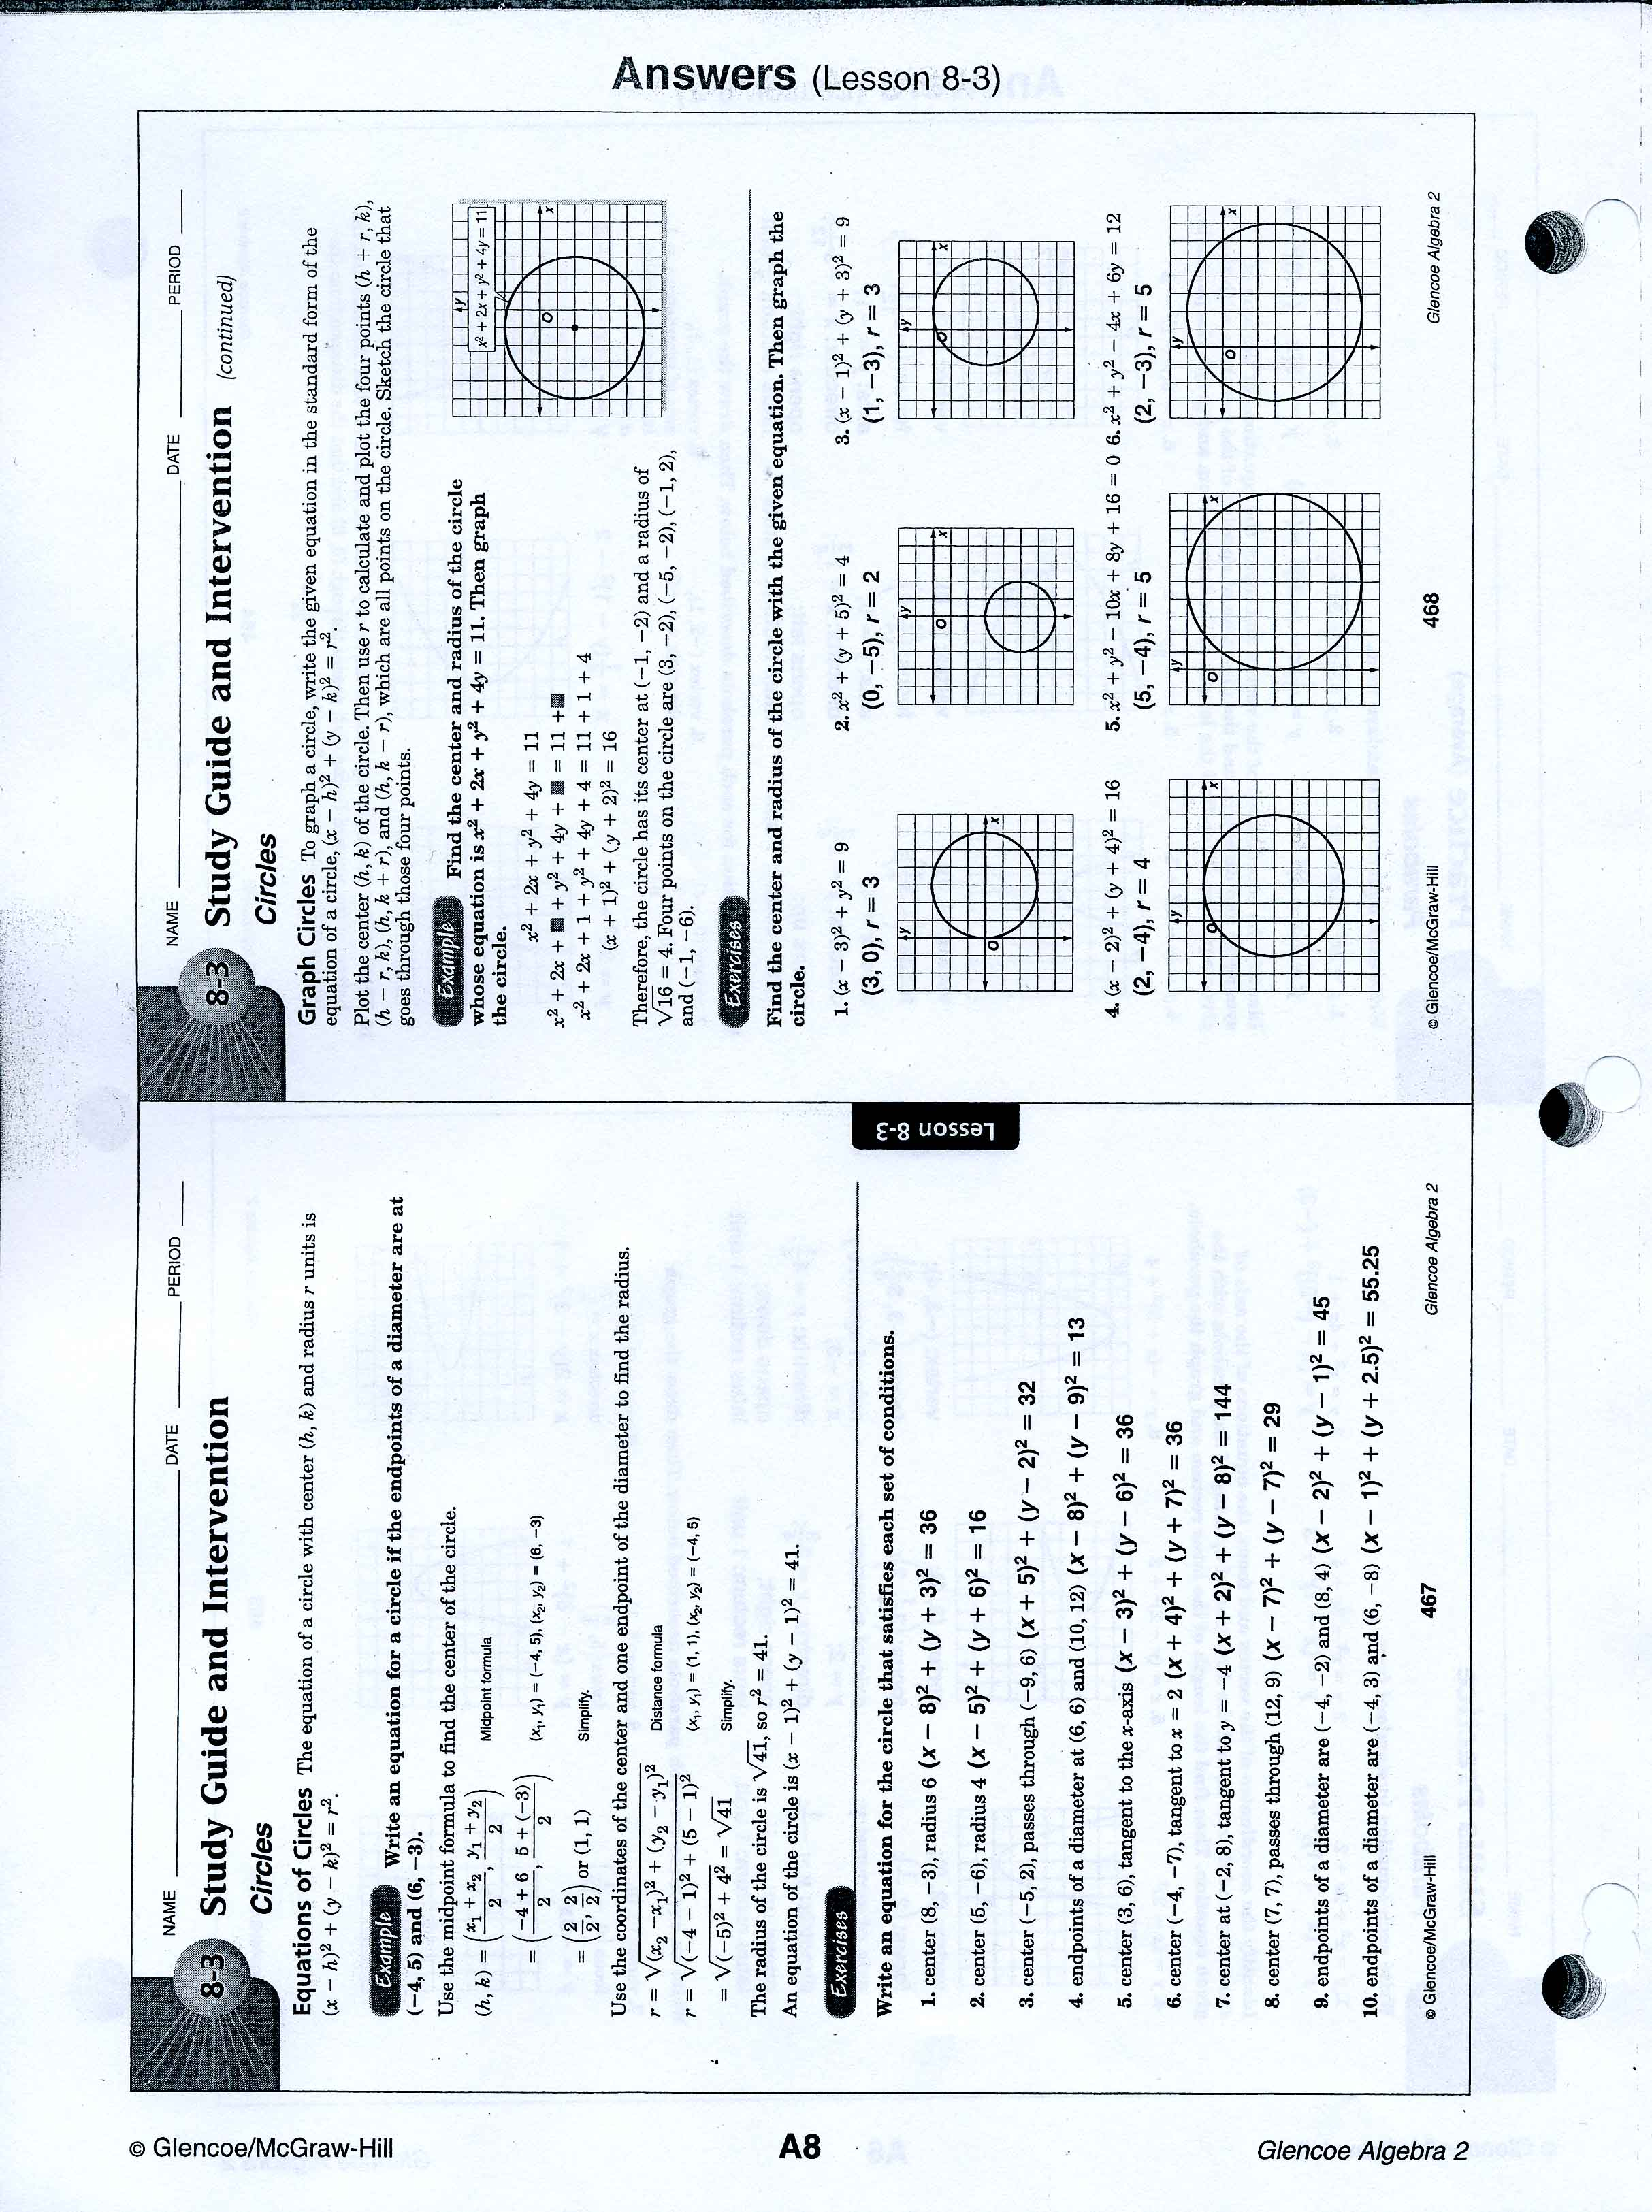 Printables Algebra 2 Worksheets With Answer Key mrscabral algebra 2 worksheet answers worksheets 8 3